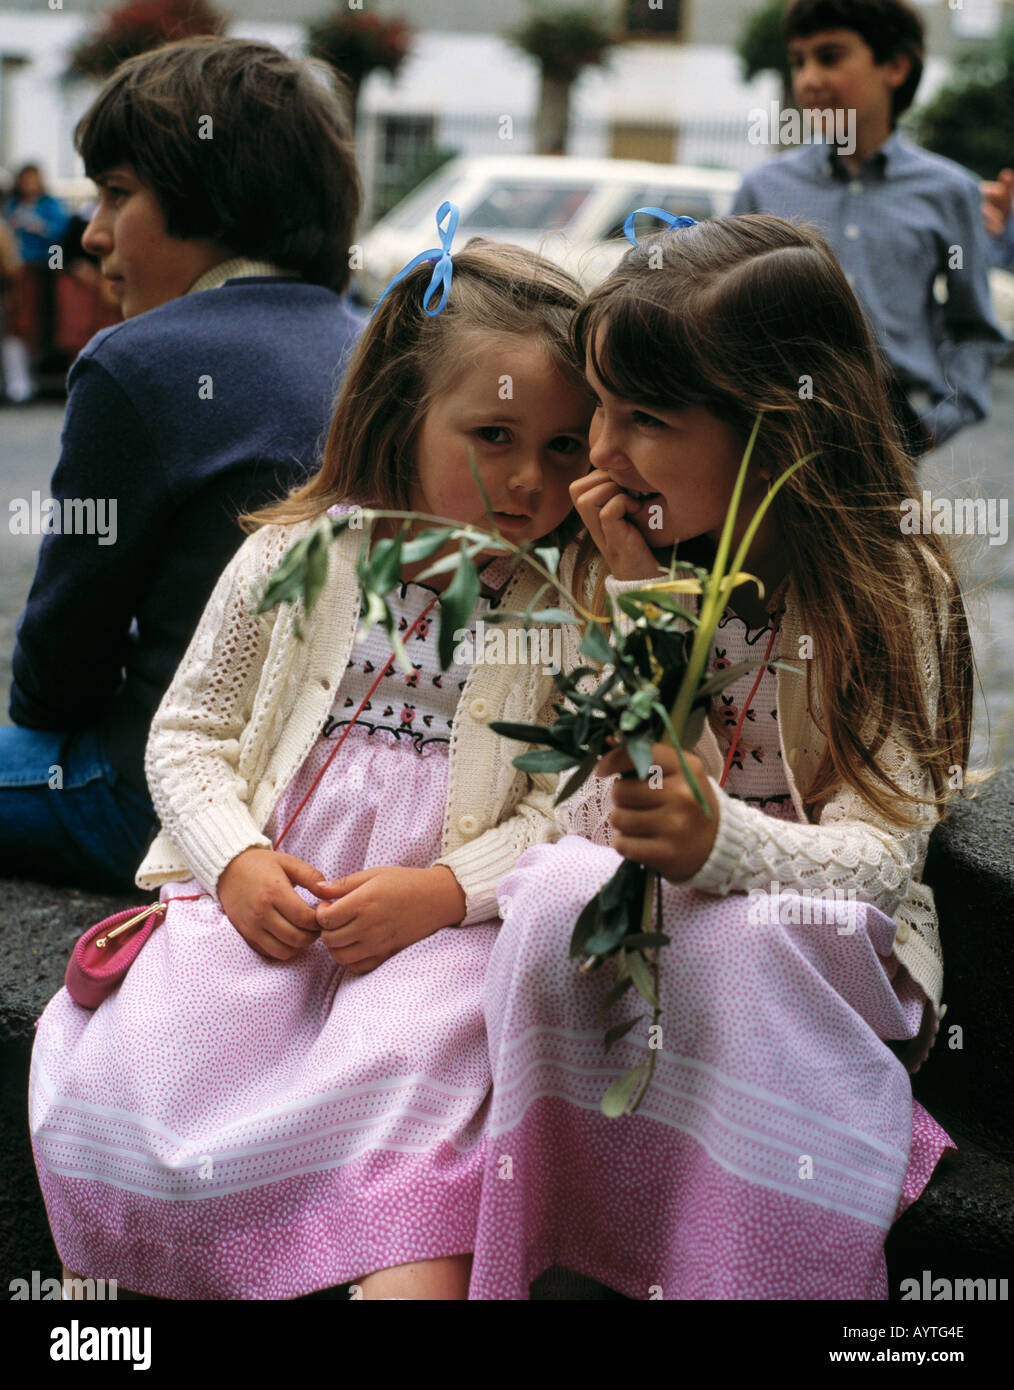 Spain, Tenerife, Canary Islands, E-La Orotava, young girls with palm fronds, Palm Sunday Stock Photo